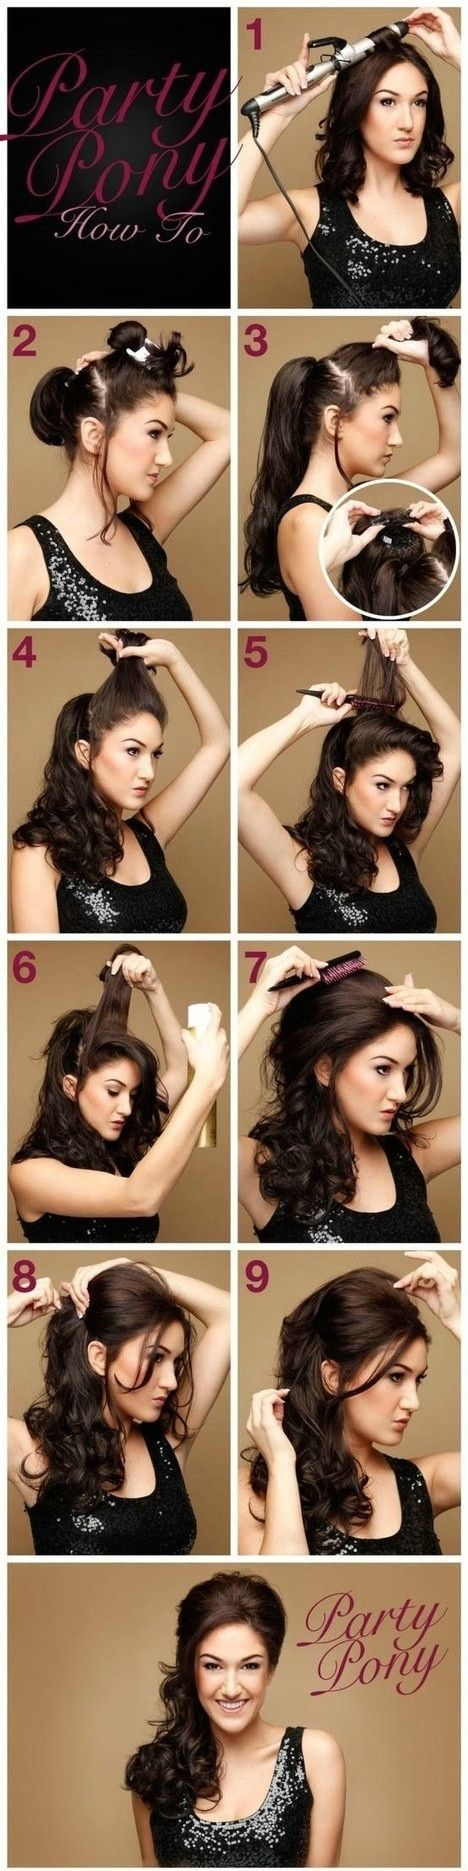 images about hair ideas on pinterest shorts cute short hair